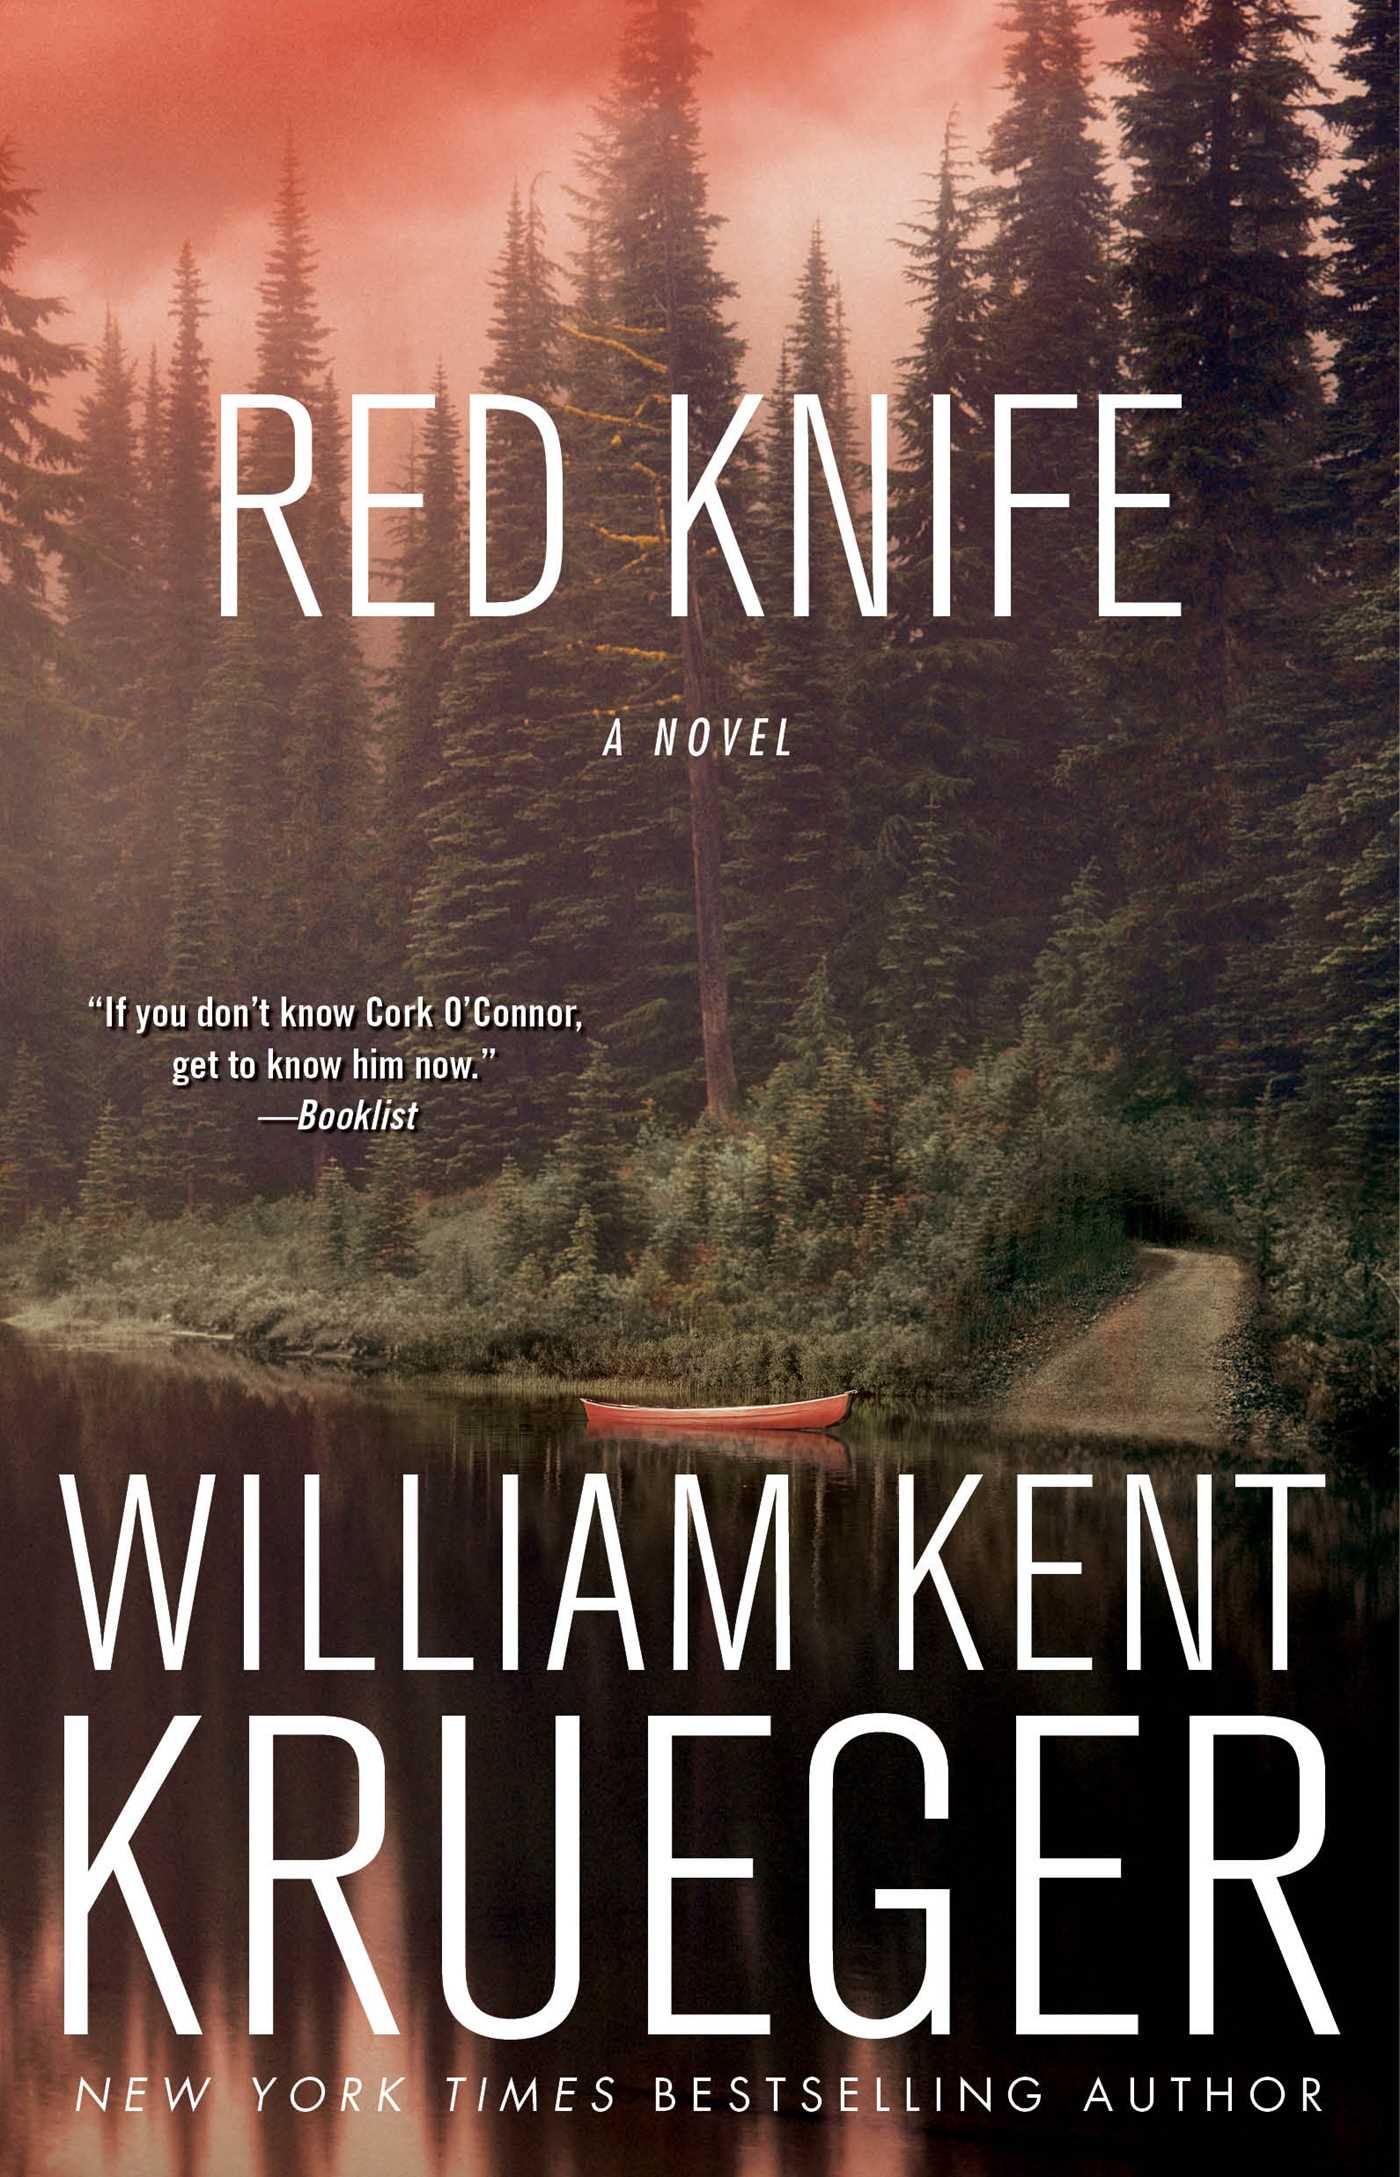 Red-knife-9781416580218_hr